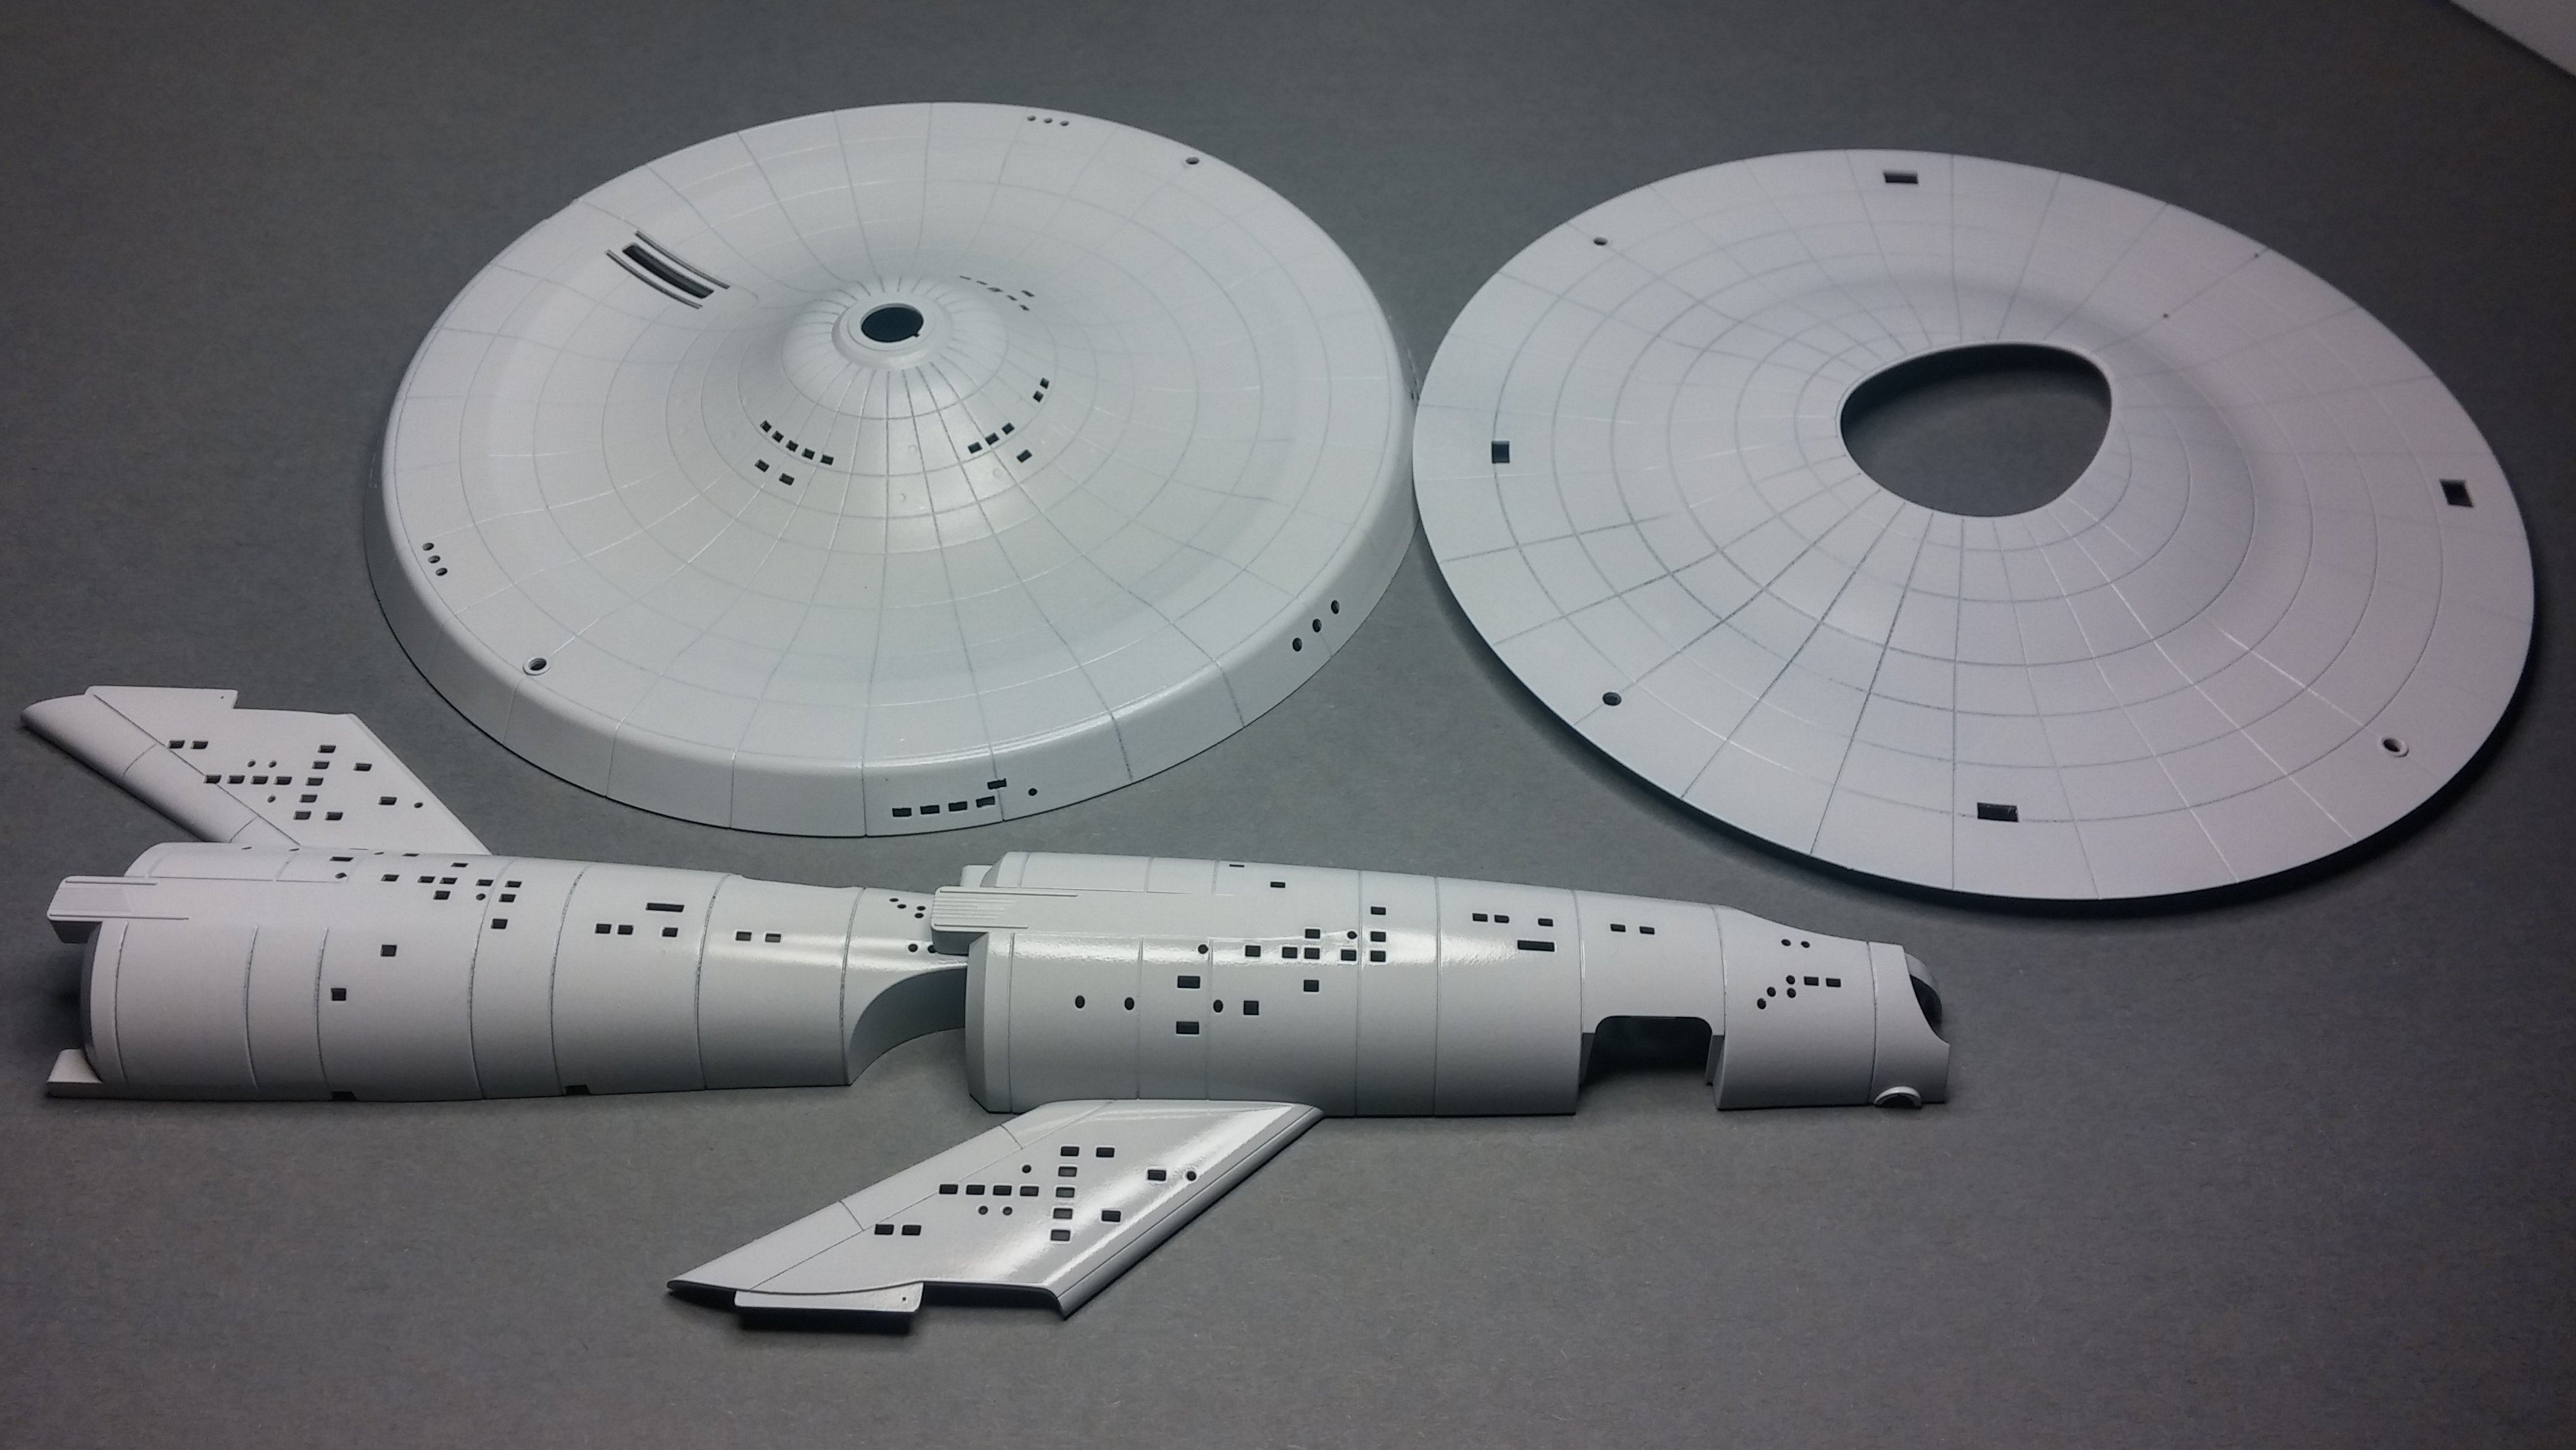 Constitution Class Starship - All the Rest - Model Cars